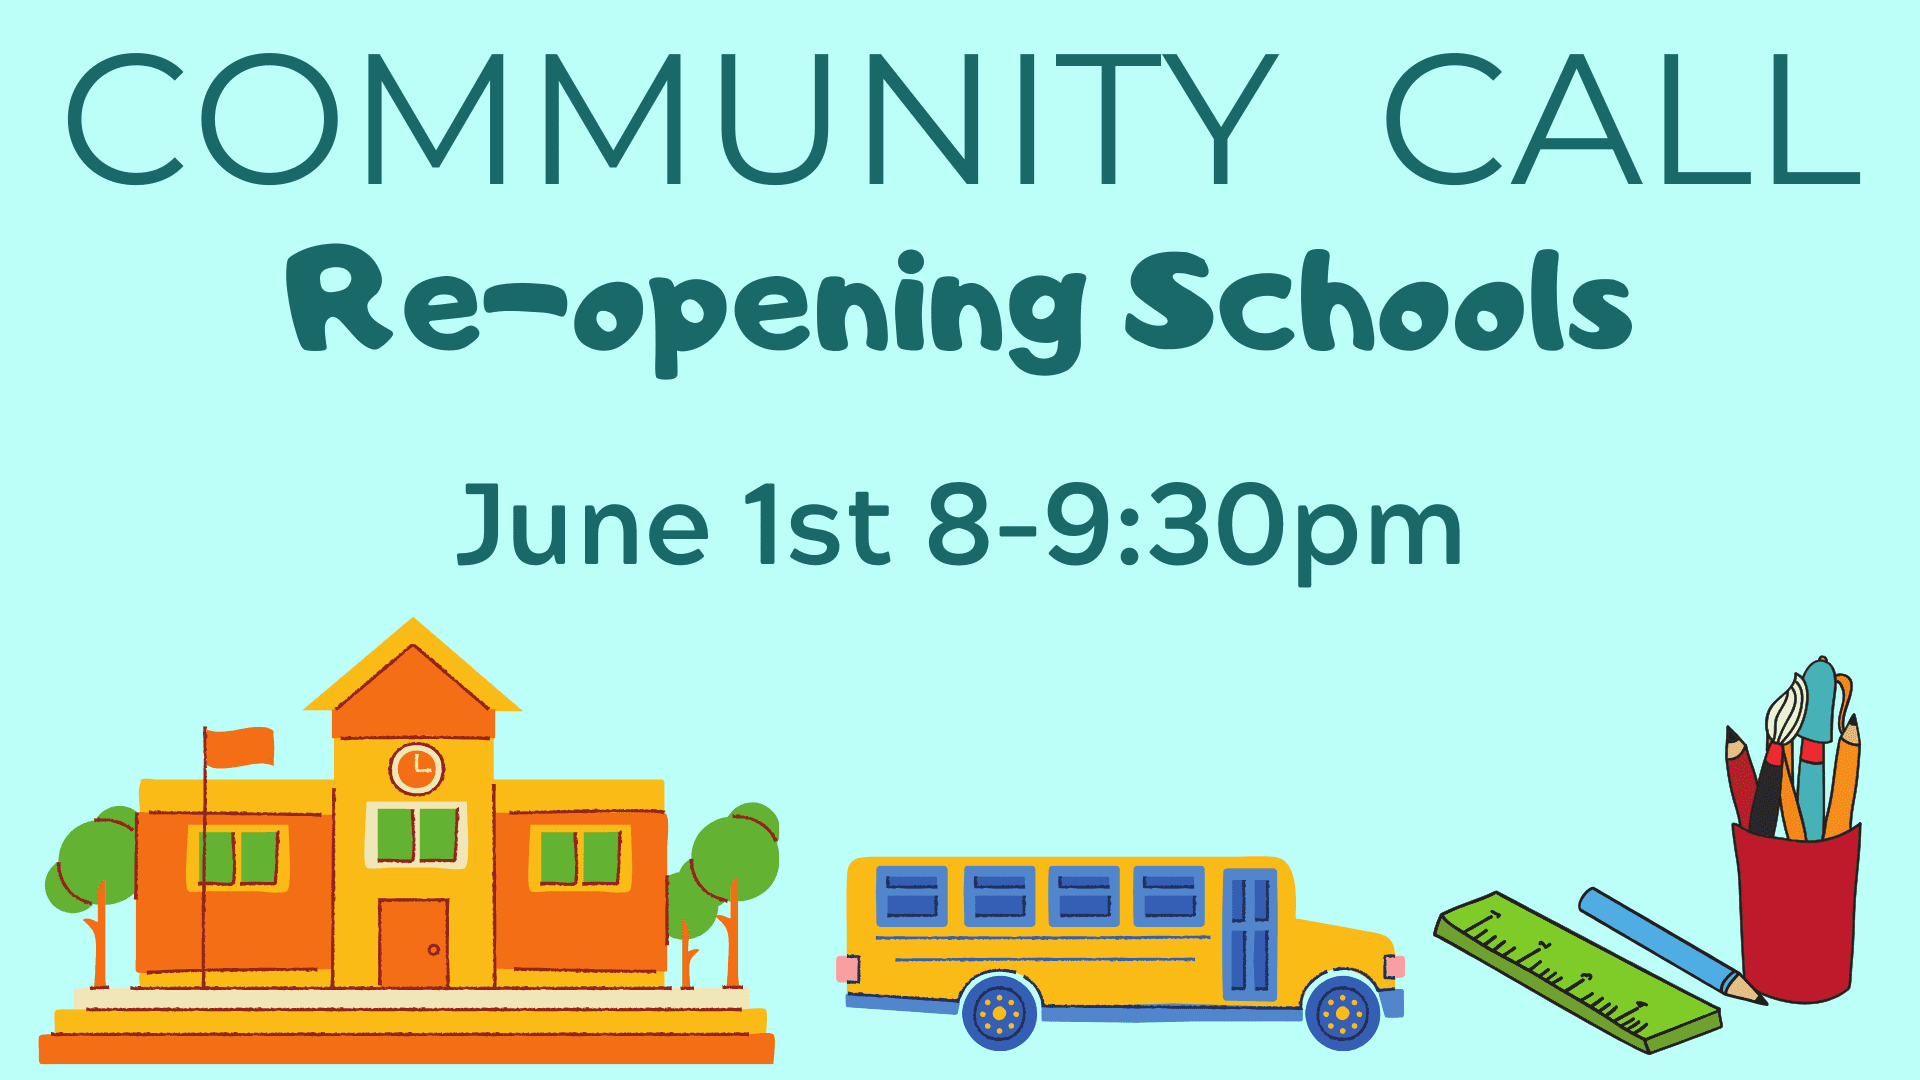 Community Call Reopening Schools